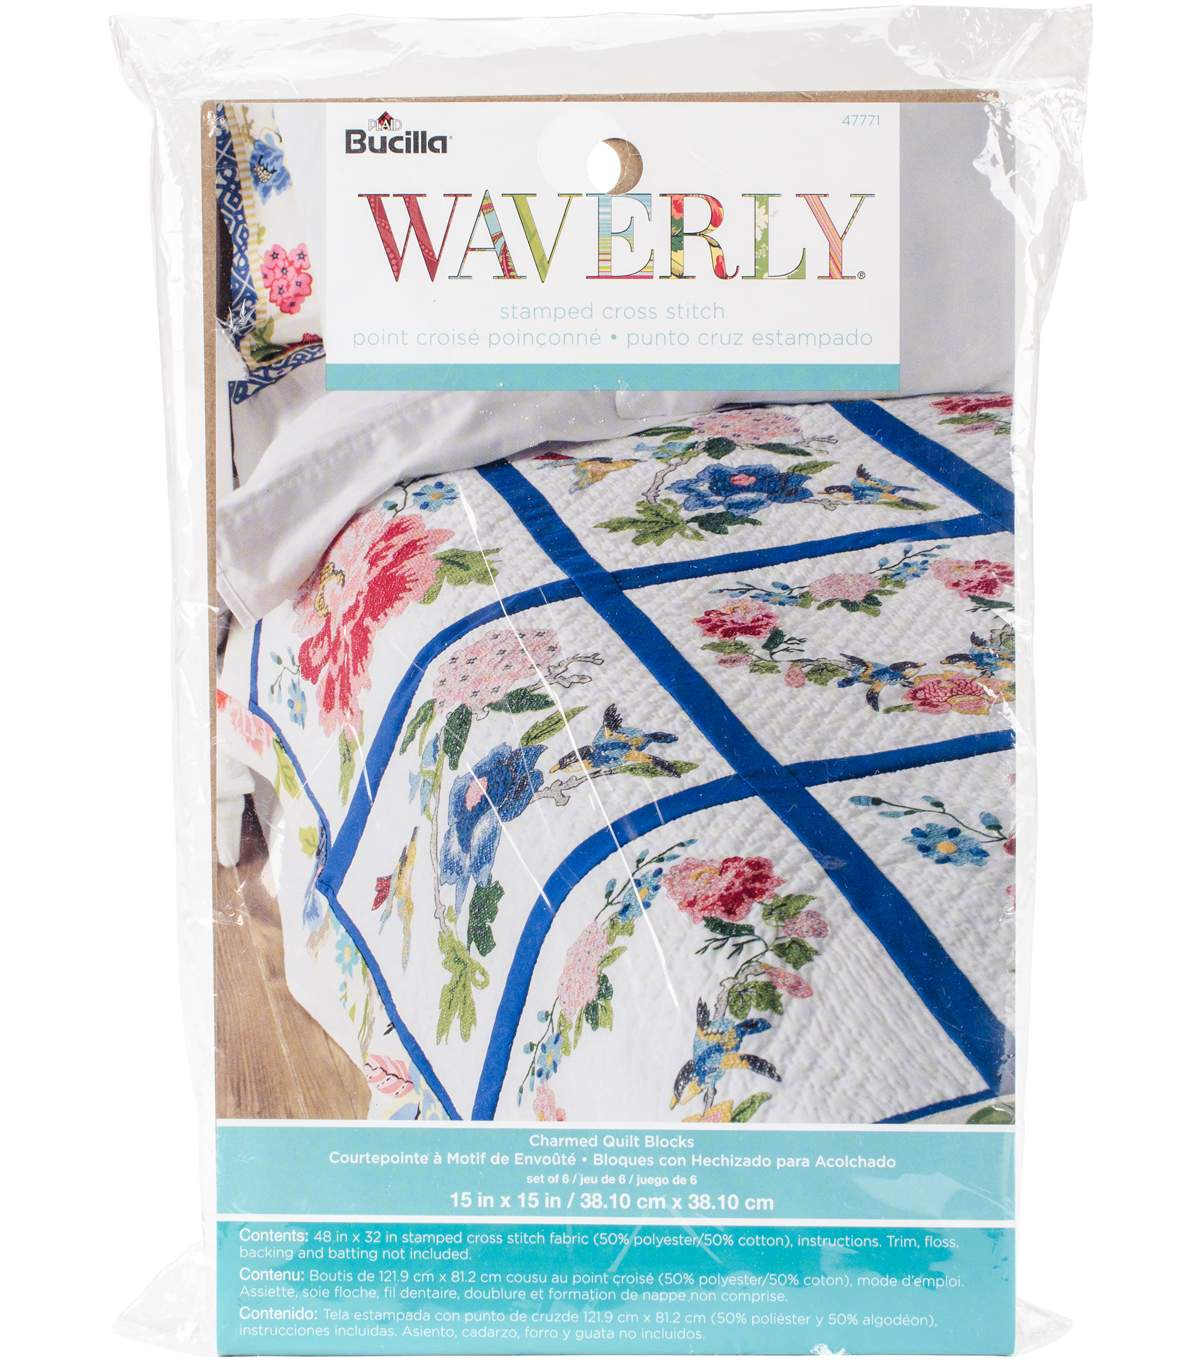 Stamped Embroidery Patterns Stamped Embroidery Quilt Blocks 15x15 6 Pack Waverly Charmed